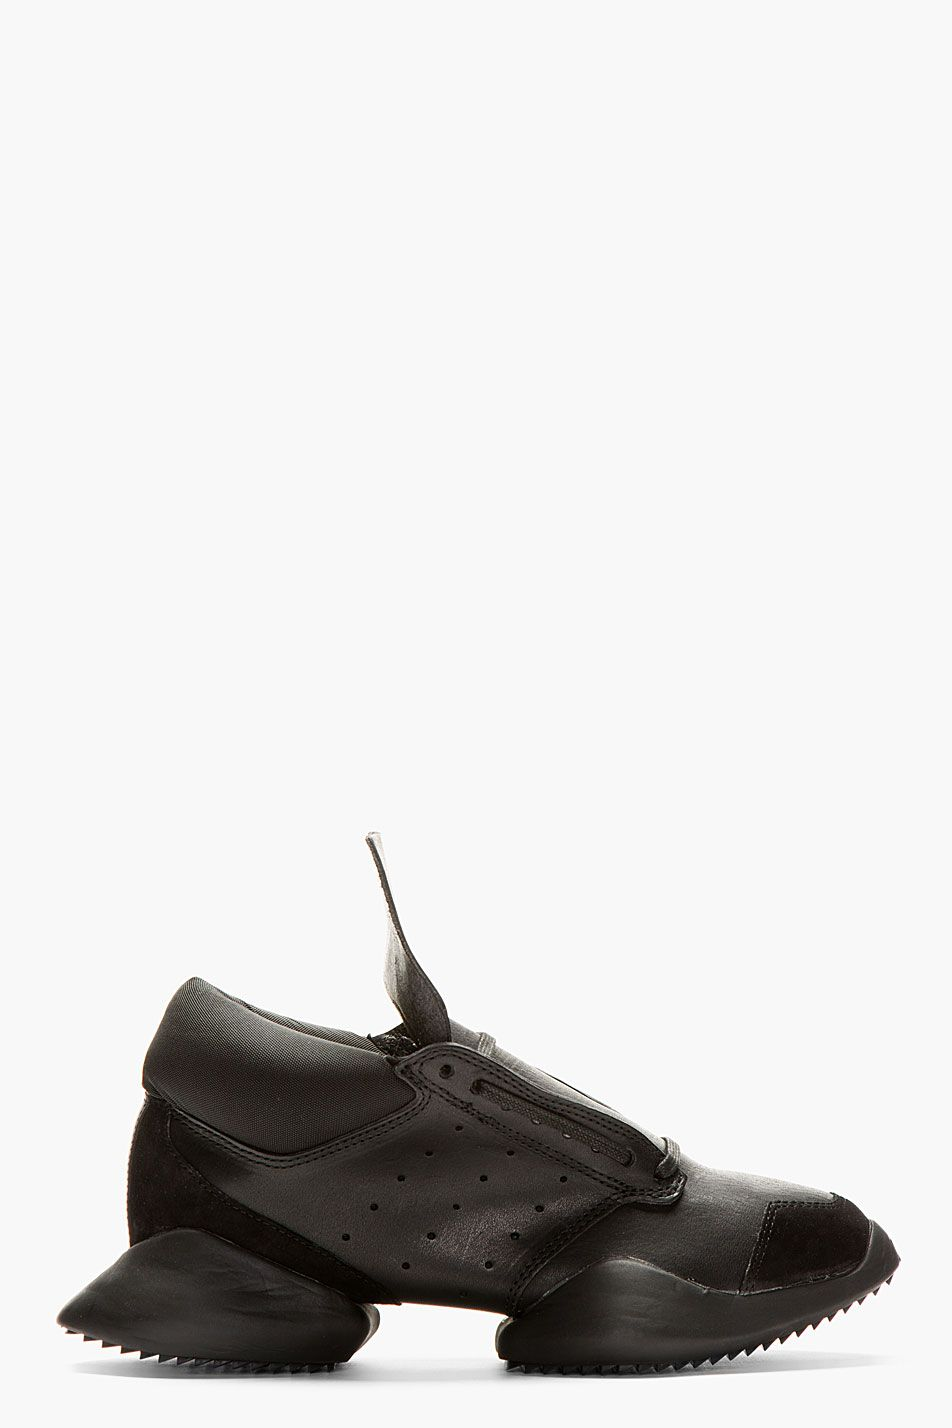 wholesale dealer ed294 7c0a6 RICK OWENS Black Leather Island Sole adidas Edition Sneakers